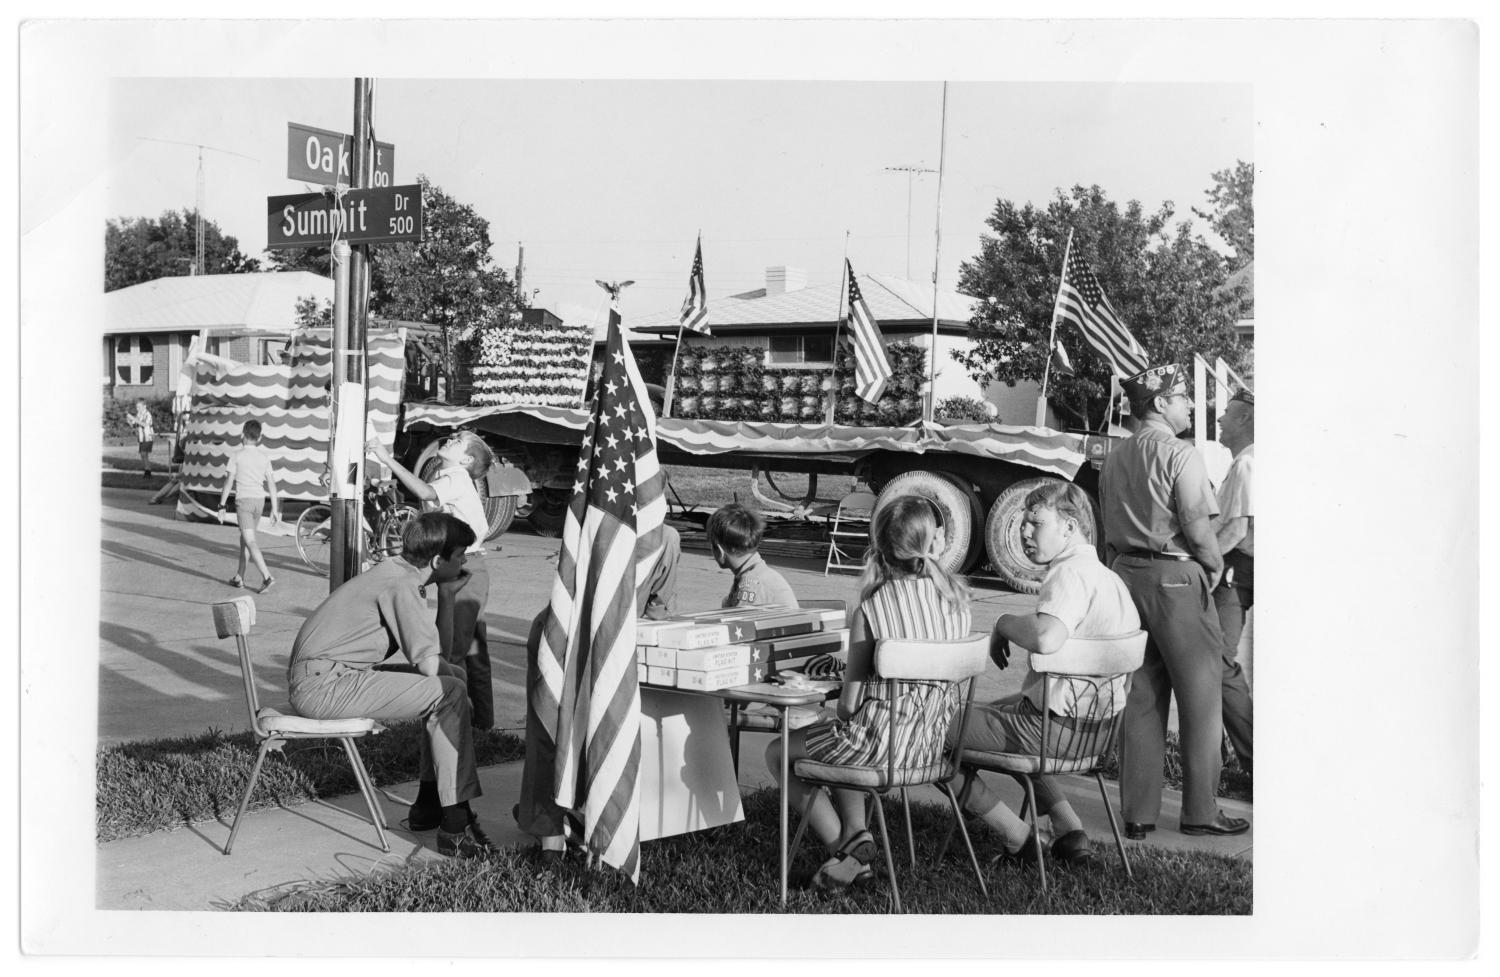 """Fourth of July Parade, Photograph of Independence Day parade at the corner of Oak Street and Summit Drive in Richardson, Texas. A semi truck parade float is decorated with flags, streamers, and paper. In the foreground, there are people seated and standing near a table with boxed United States flags on it. A flag is set up at the table. To the left, there is a street sign with """"Oak Street"""" and """"Summit Drive."""","""